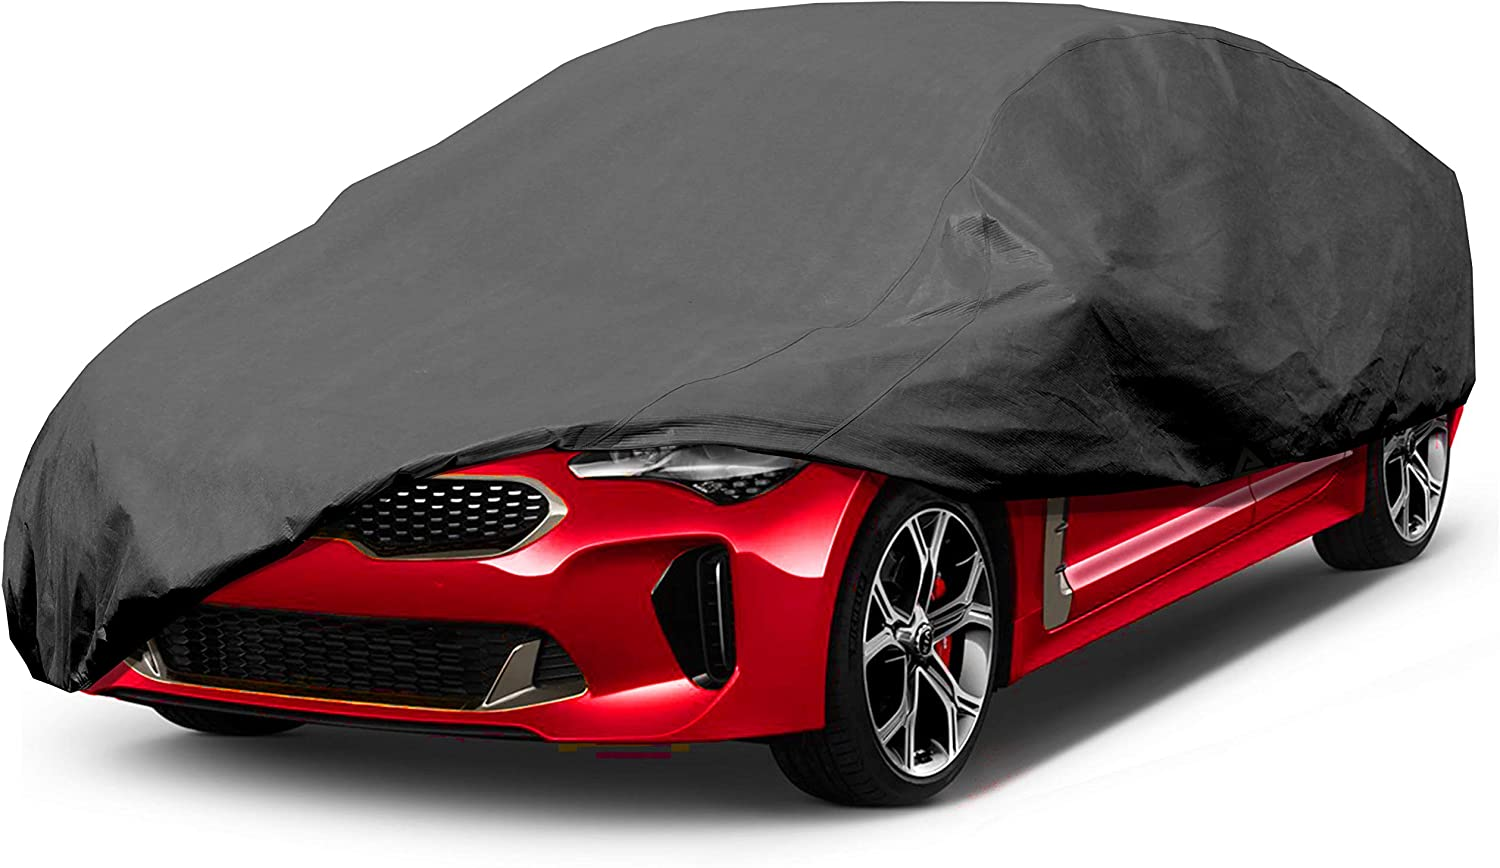 Leader Accessories Premium Car Cover 100% Waterproof Fit Car's Length Up to 228'' Breathable Outdoor Indoor Black Sedan Cover